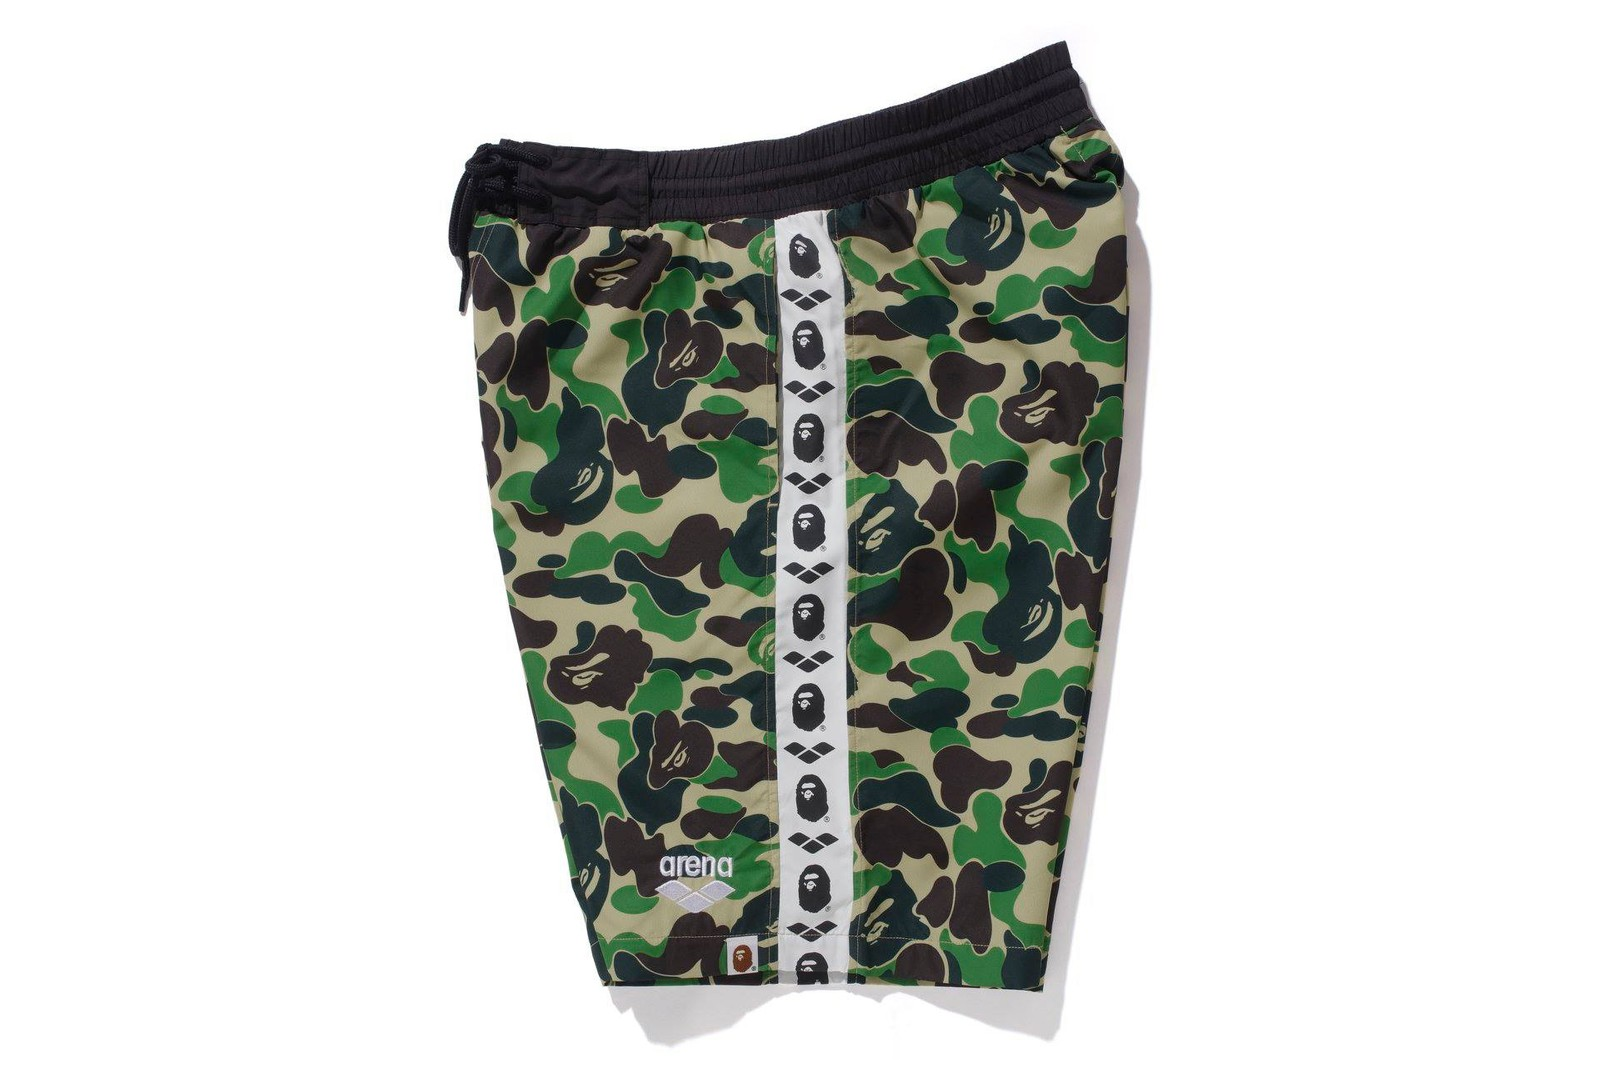 BAPE arena Swimwear Collection a bathing ape capsules swim trunks swimsuits googles flutter kick board ape head towels abc camo Swimwear lookbooks collaborations